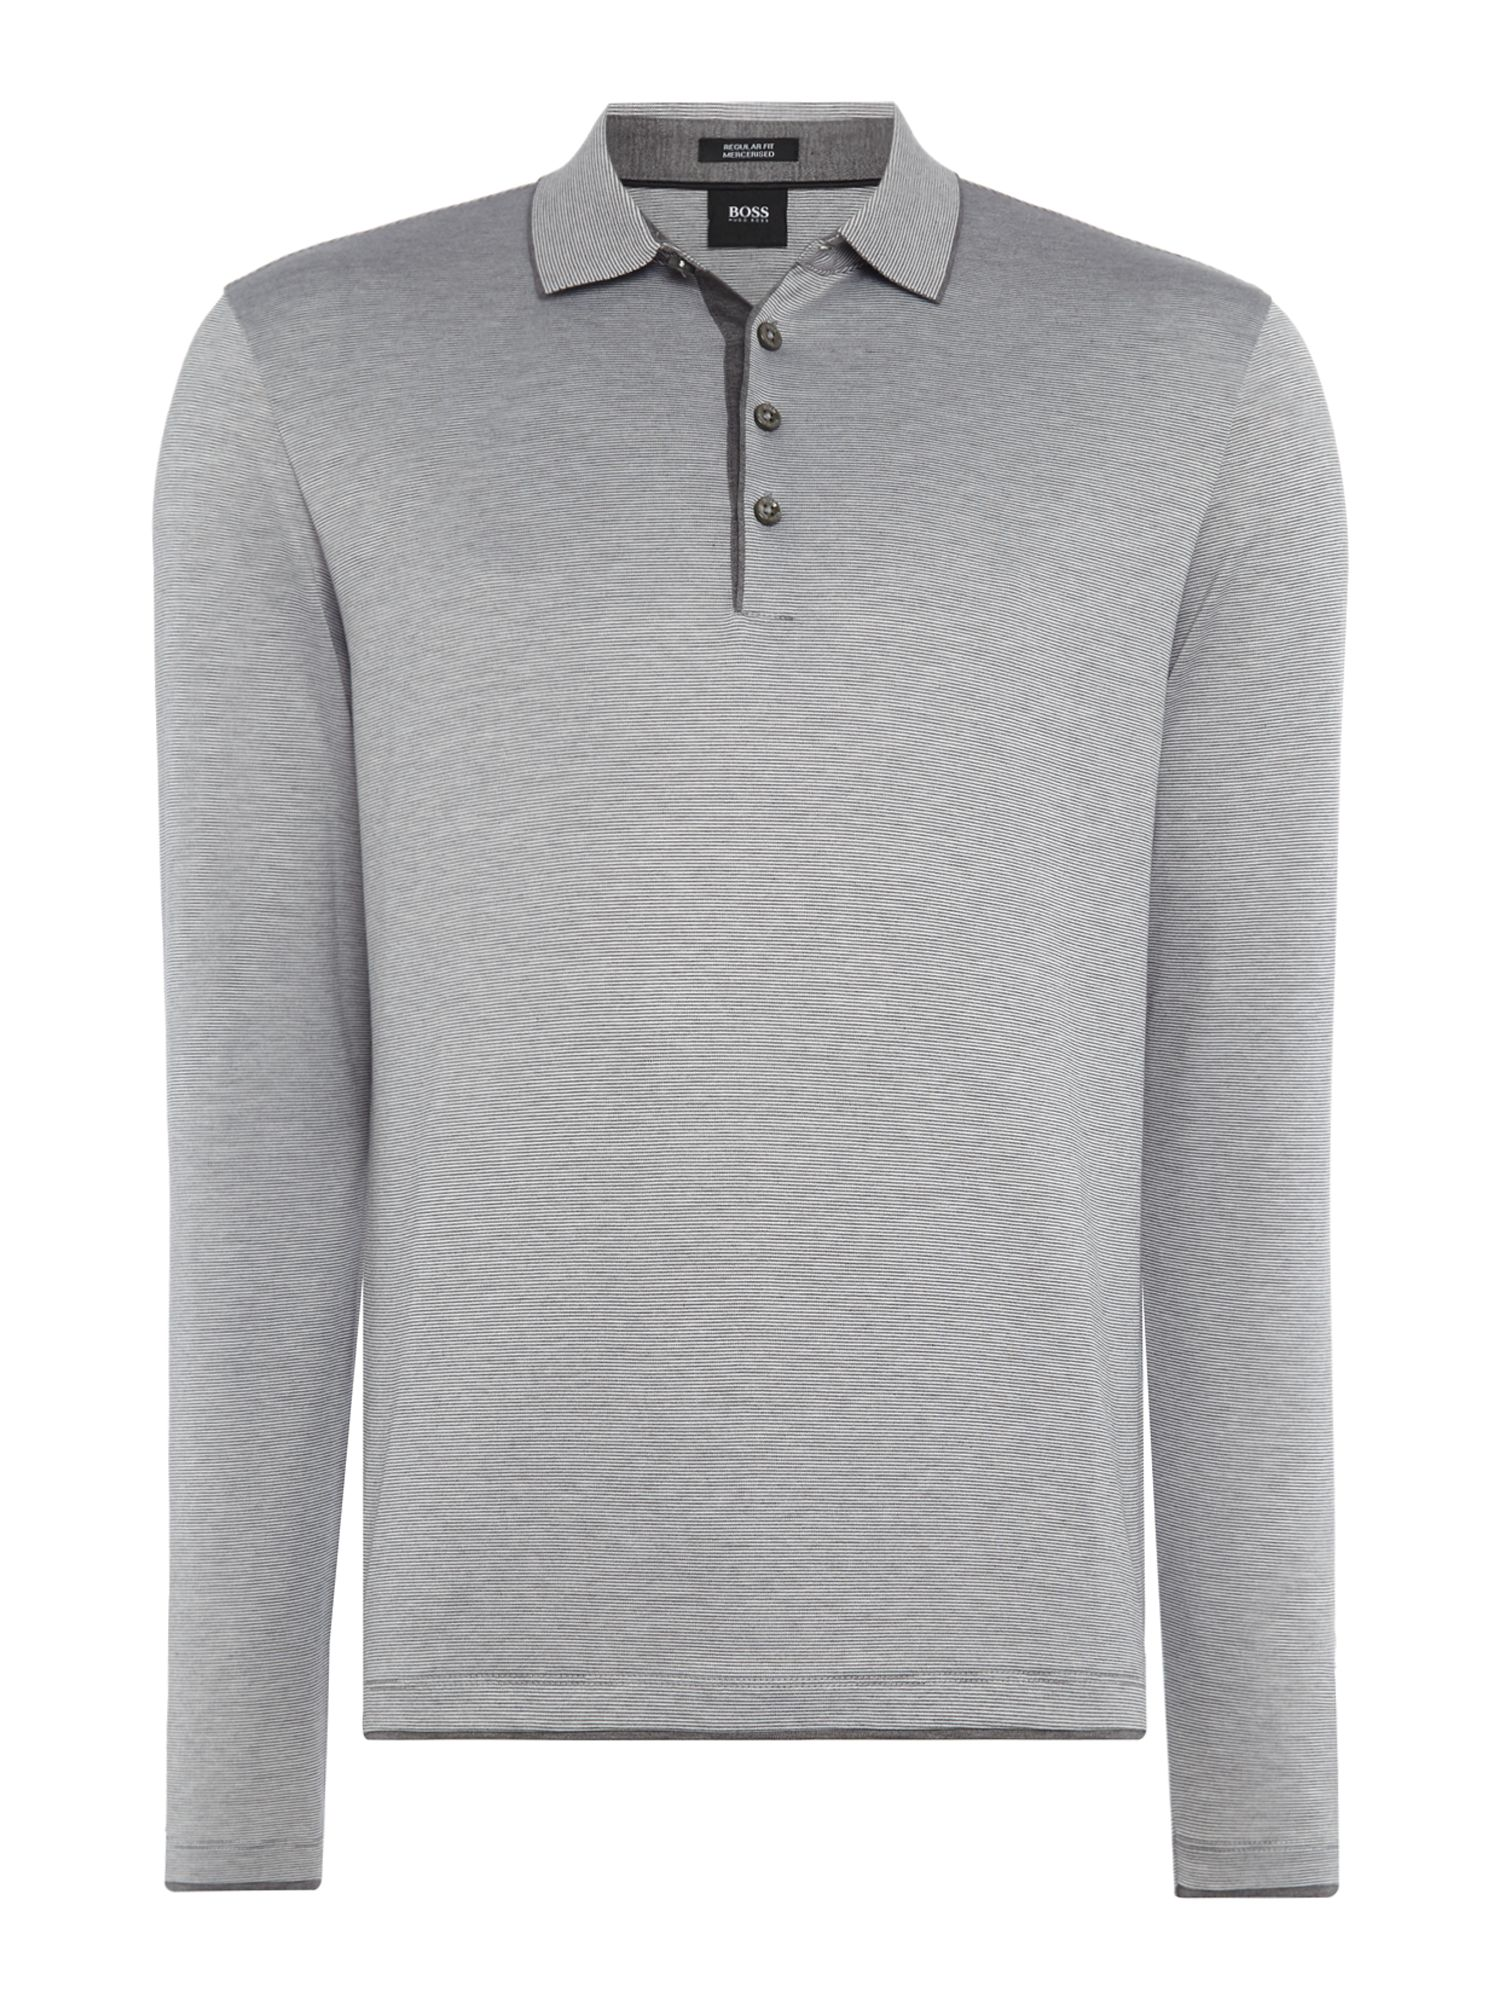 Men's Hugo Boss Pearl 05 fine stripe long sleeve polo shirt, Light Grey